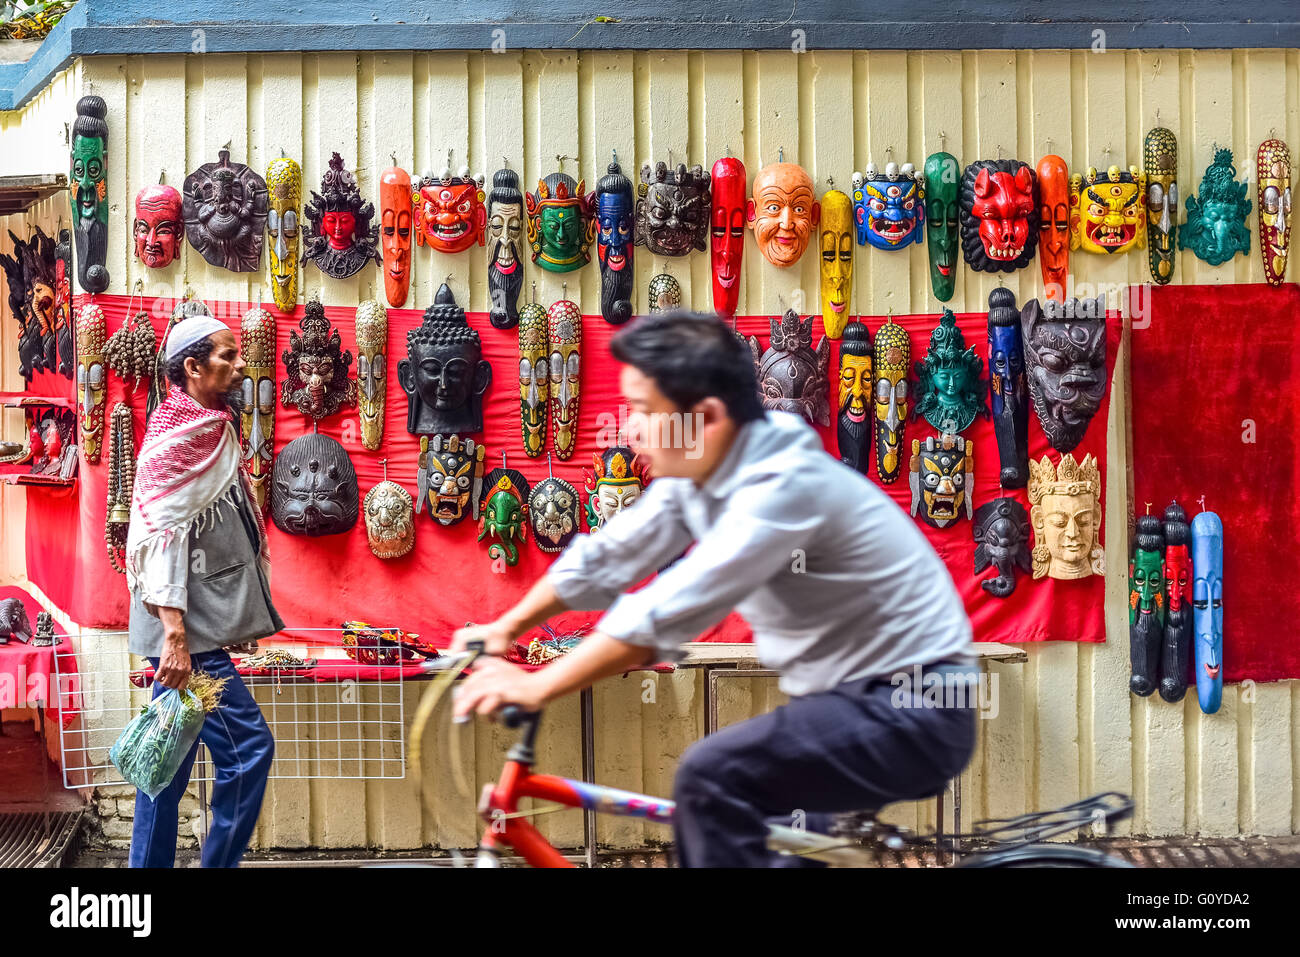 Tibetan-style carved masks at a street vendor in Thamel area, Kathmandu, Nepal. © Reynold Sumayku - Stock Image